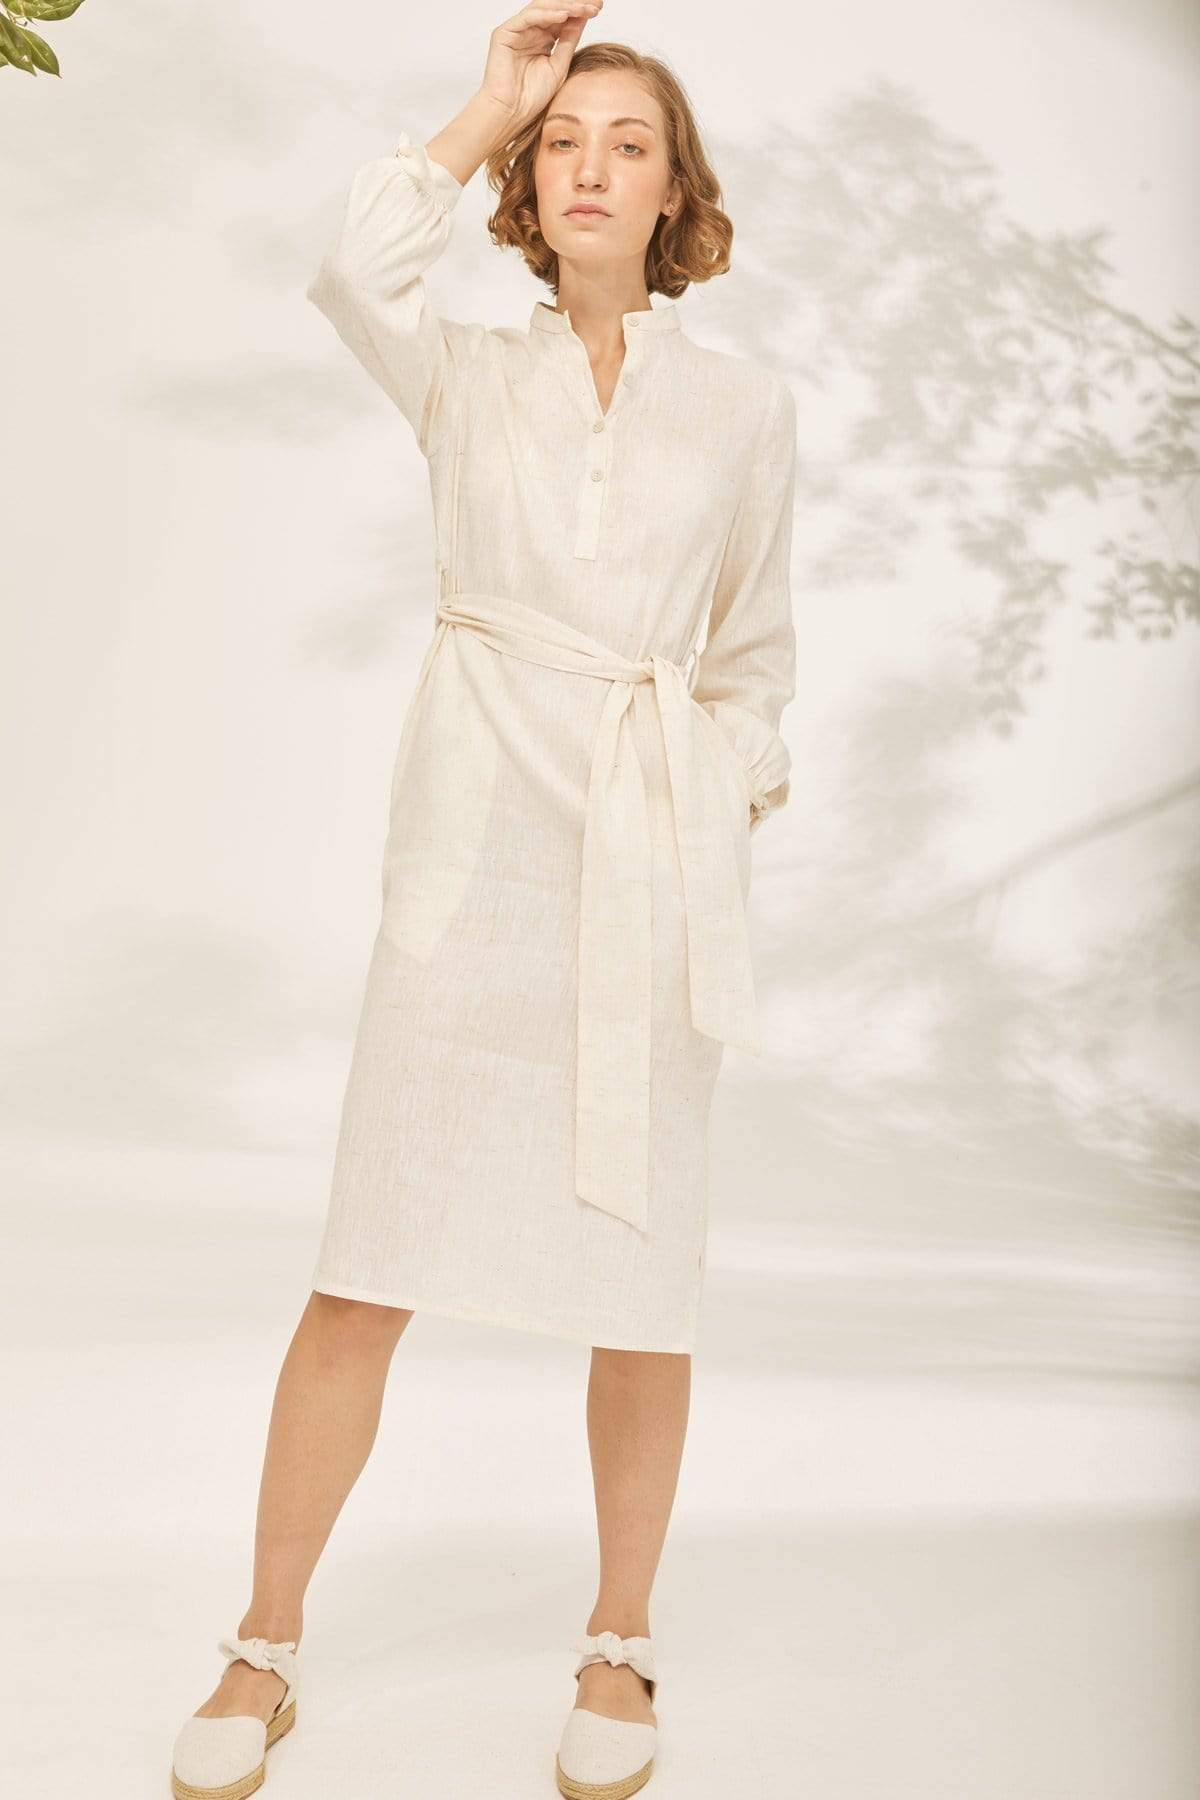 TAKTAI Dress S / Natural Bow Wrist Shirt Dress